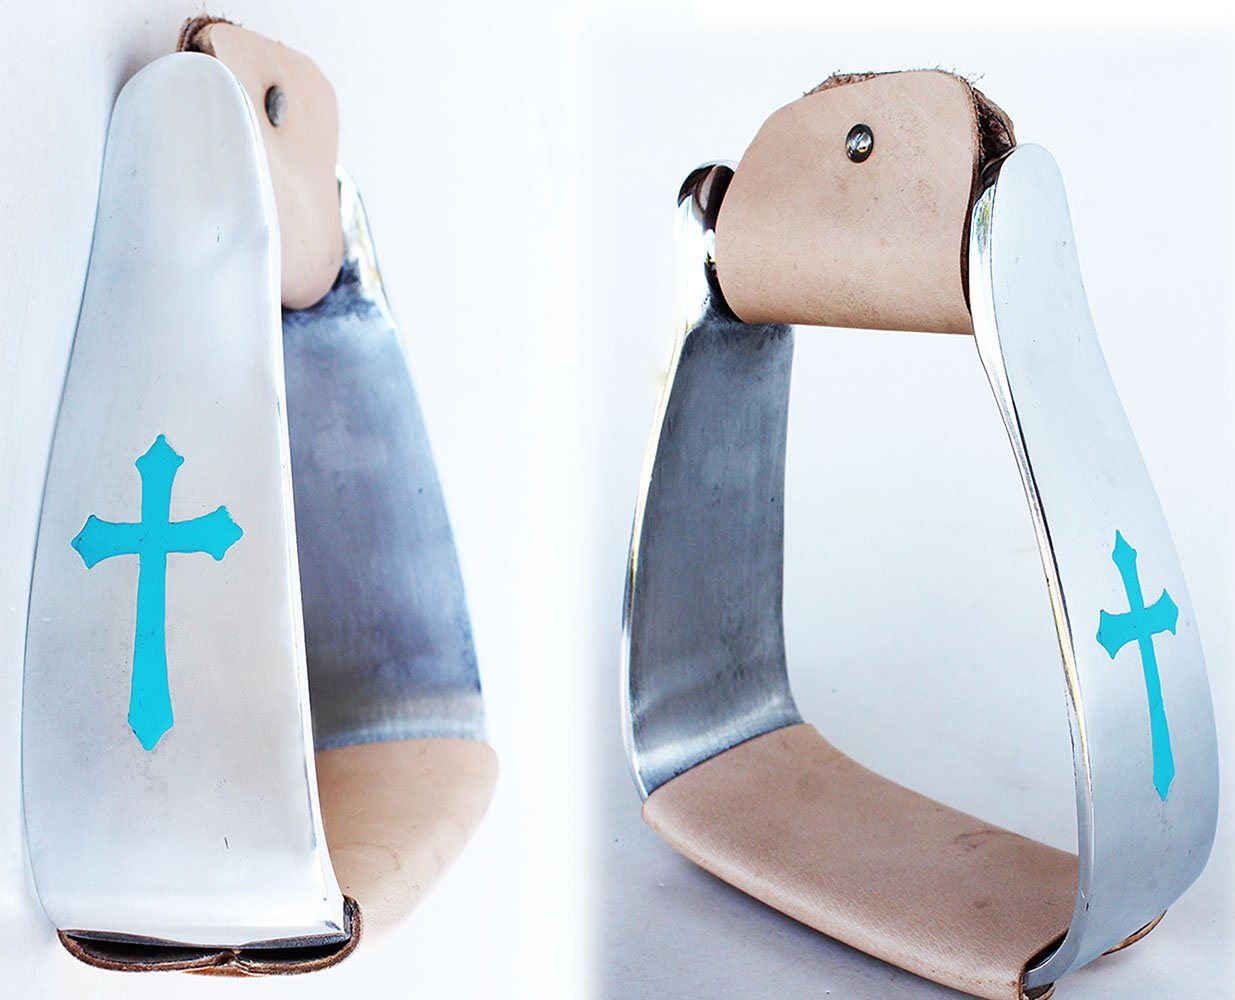 PRORIDER HorseサドルターコイズCross Angled SlantedアルミStirrups 5135 VR  Turquoise Cross with Tan Leather B07F199CZ4